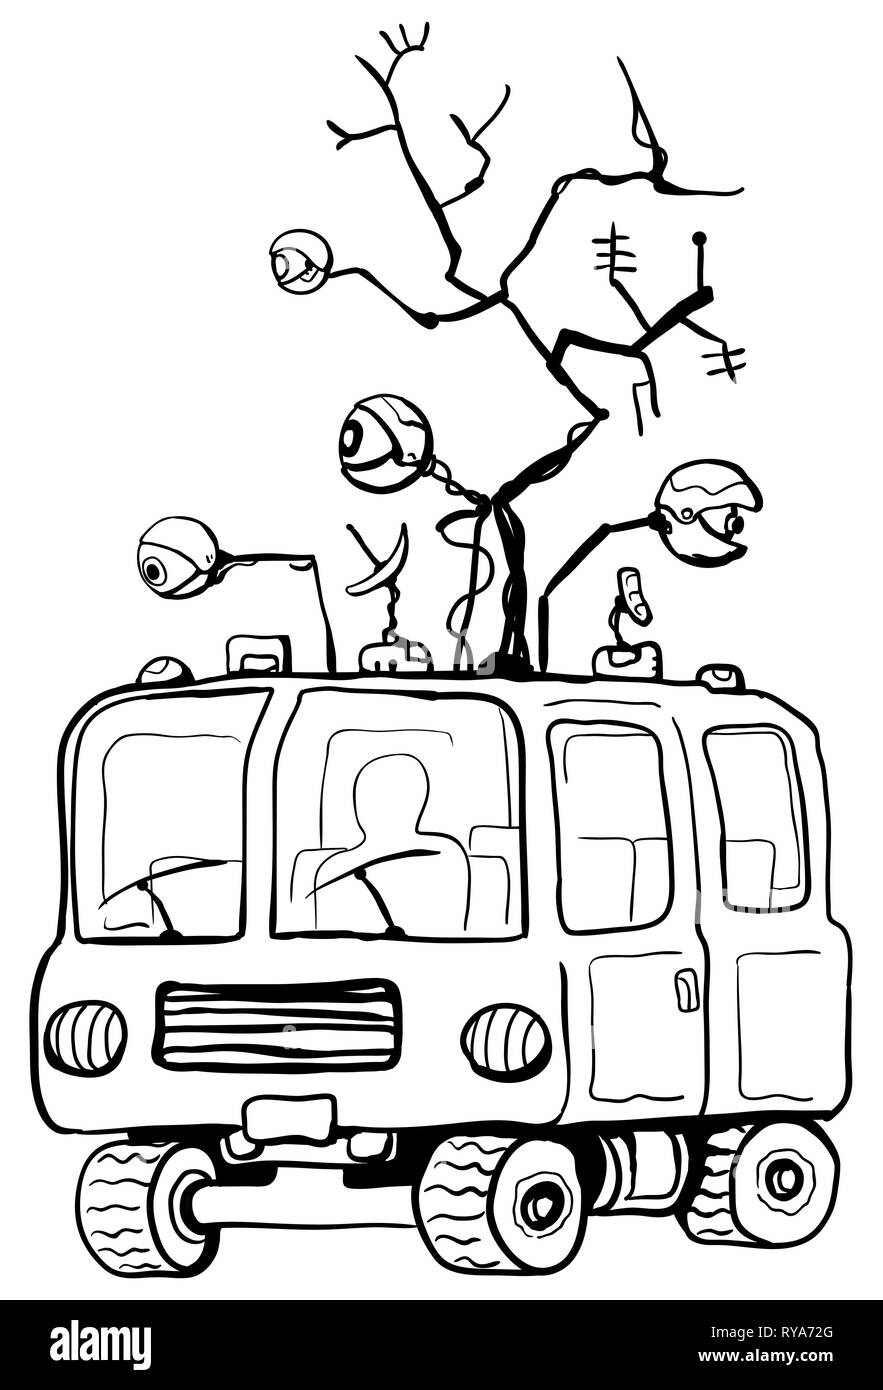 Surveillance equipment antenna van line cartoon drawing, black and white, vector illustration, vertical, isolated - Stock Image